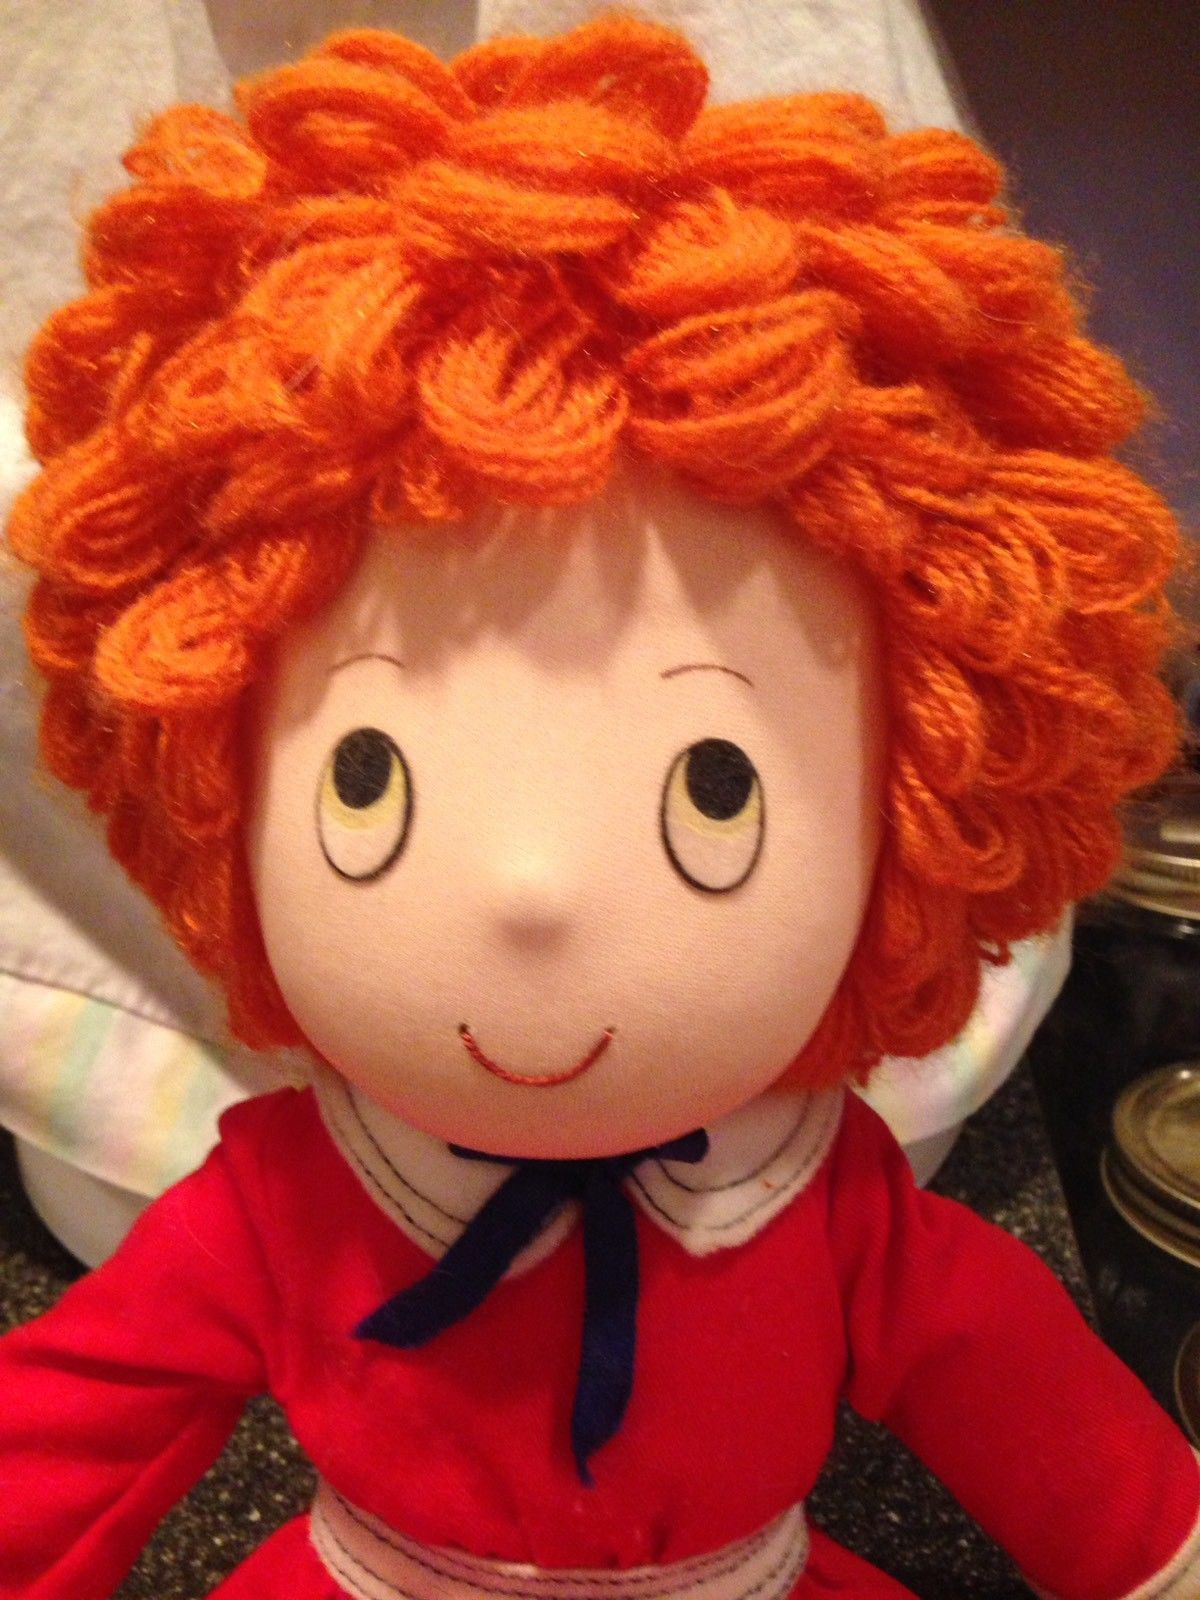 "Vintage 1982 LITTLE ORPHAN ANNIE DOLL Rag Doll Applause 15"" Rare Collectible"